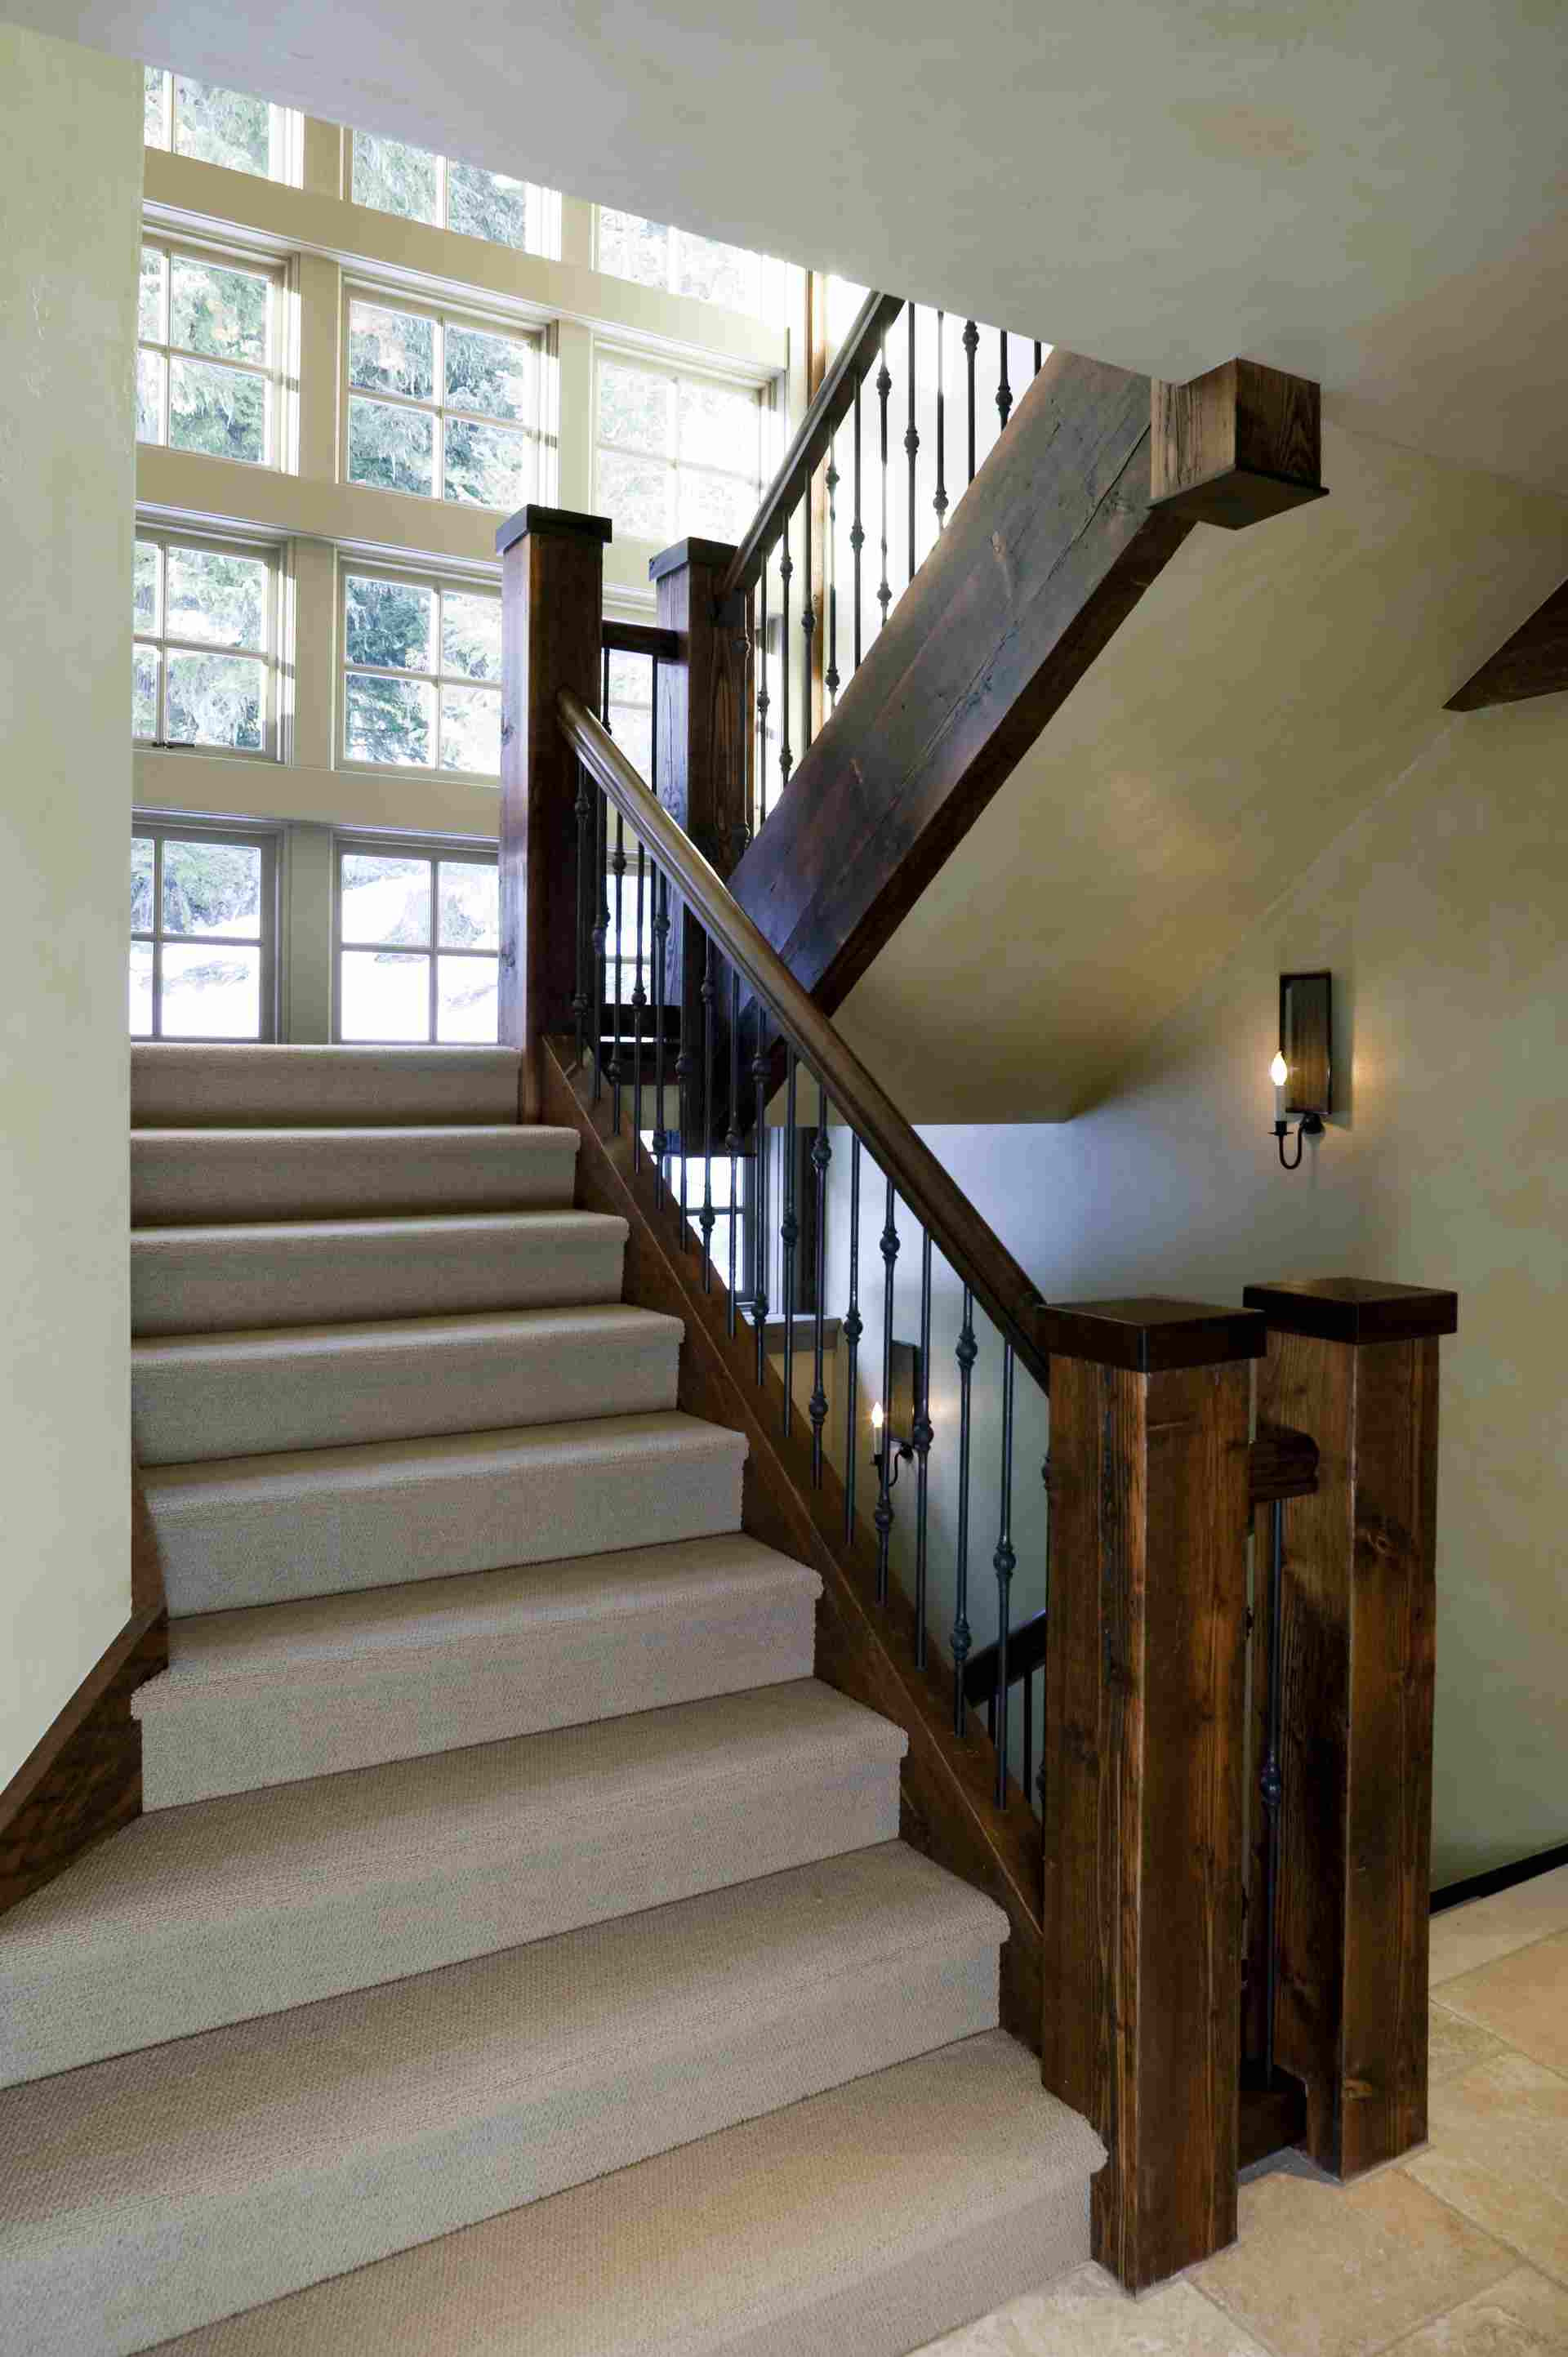 hardwood floors carpet on stairs of patterned carpet with recessed lighting pertaining to modern angled staircase with berber carpet 56a812503df78cf7729bdf69